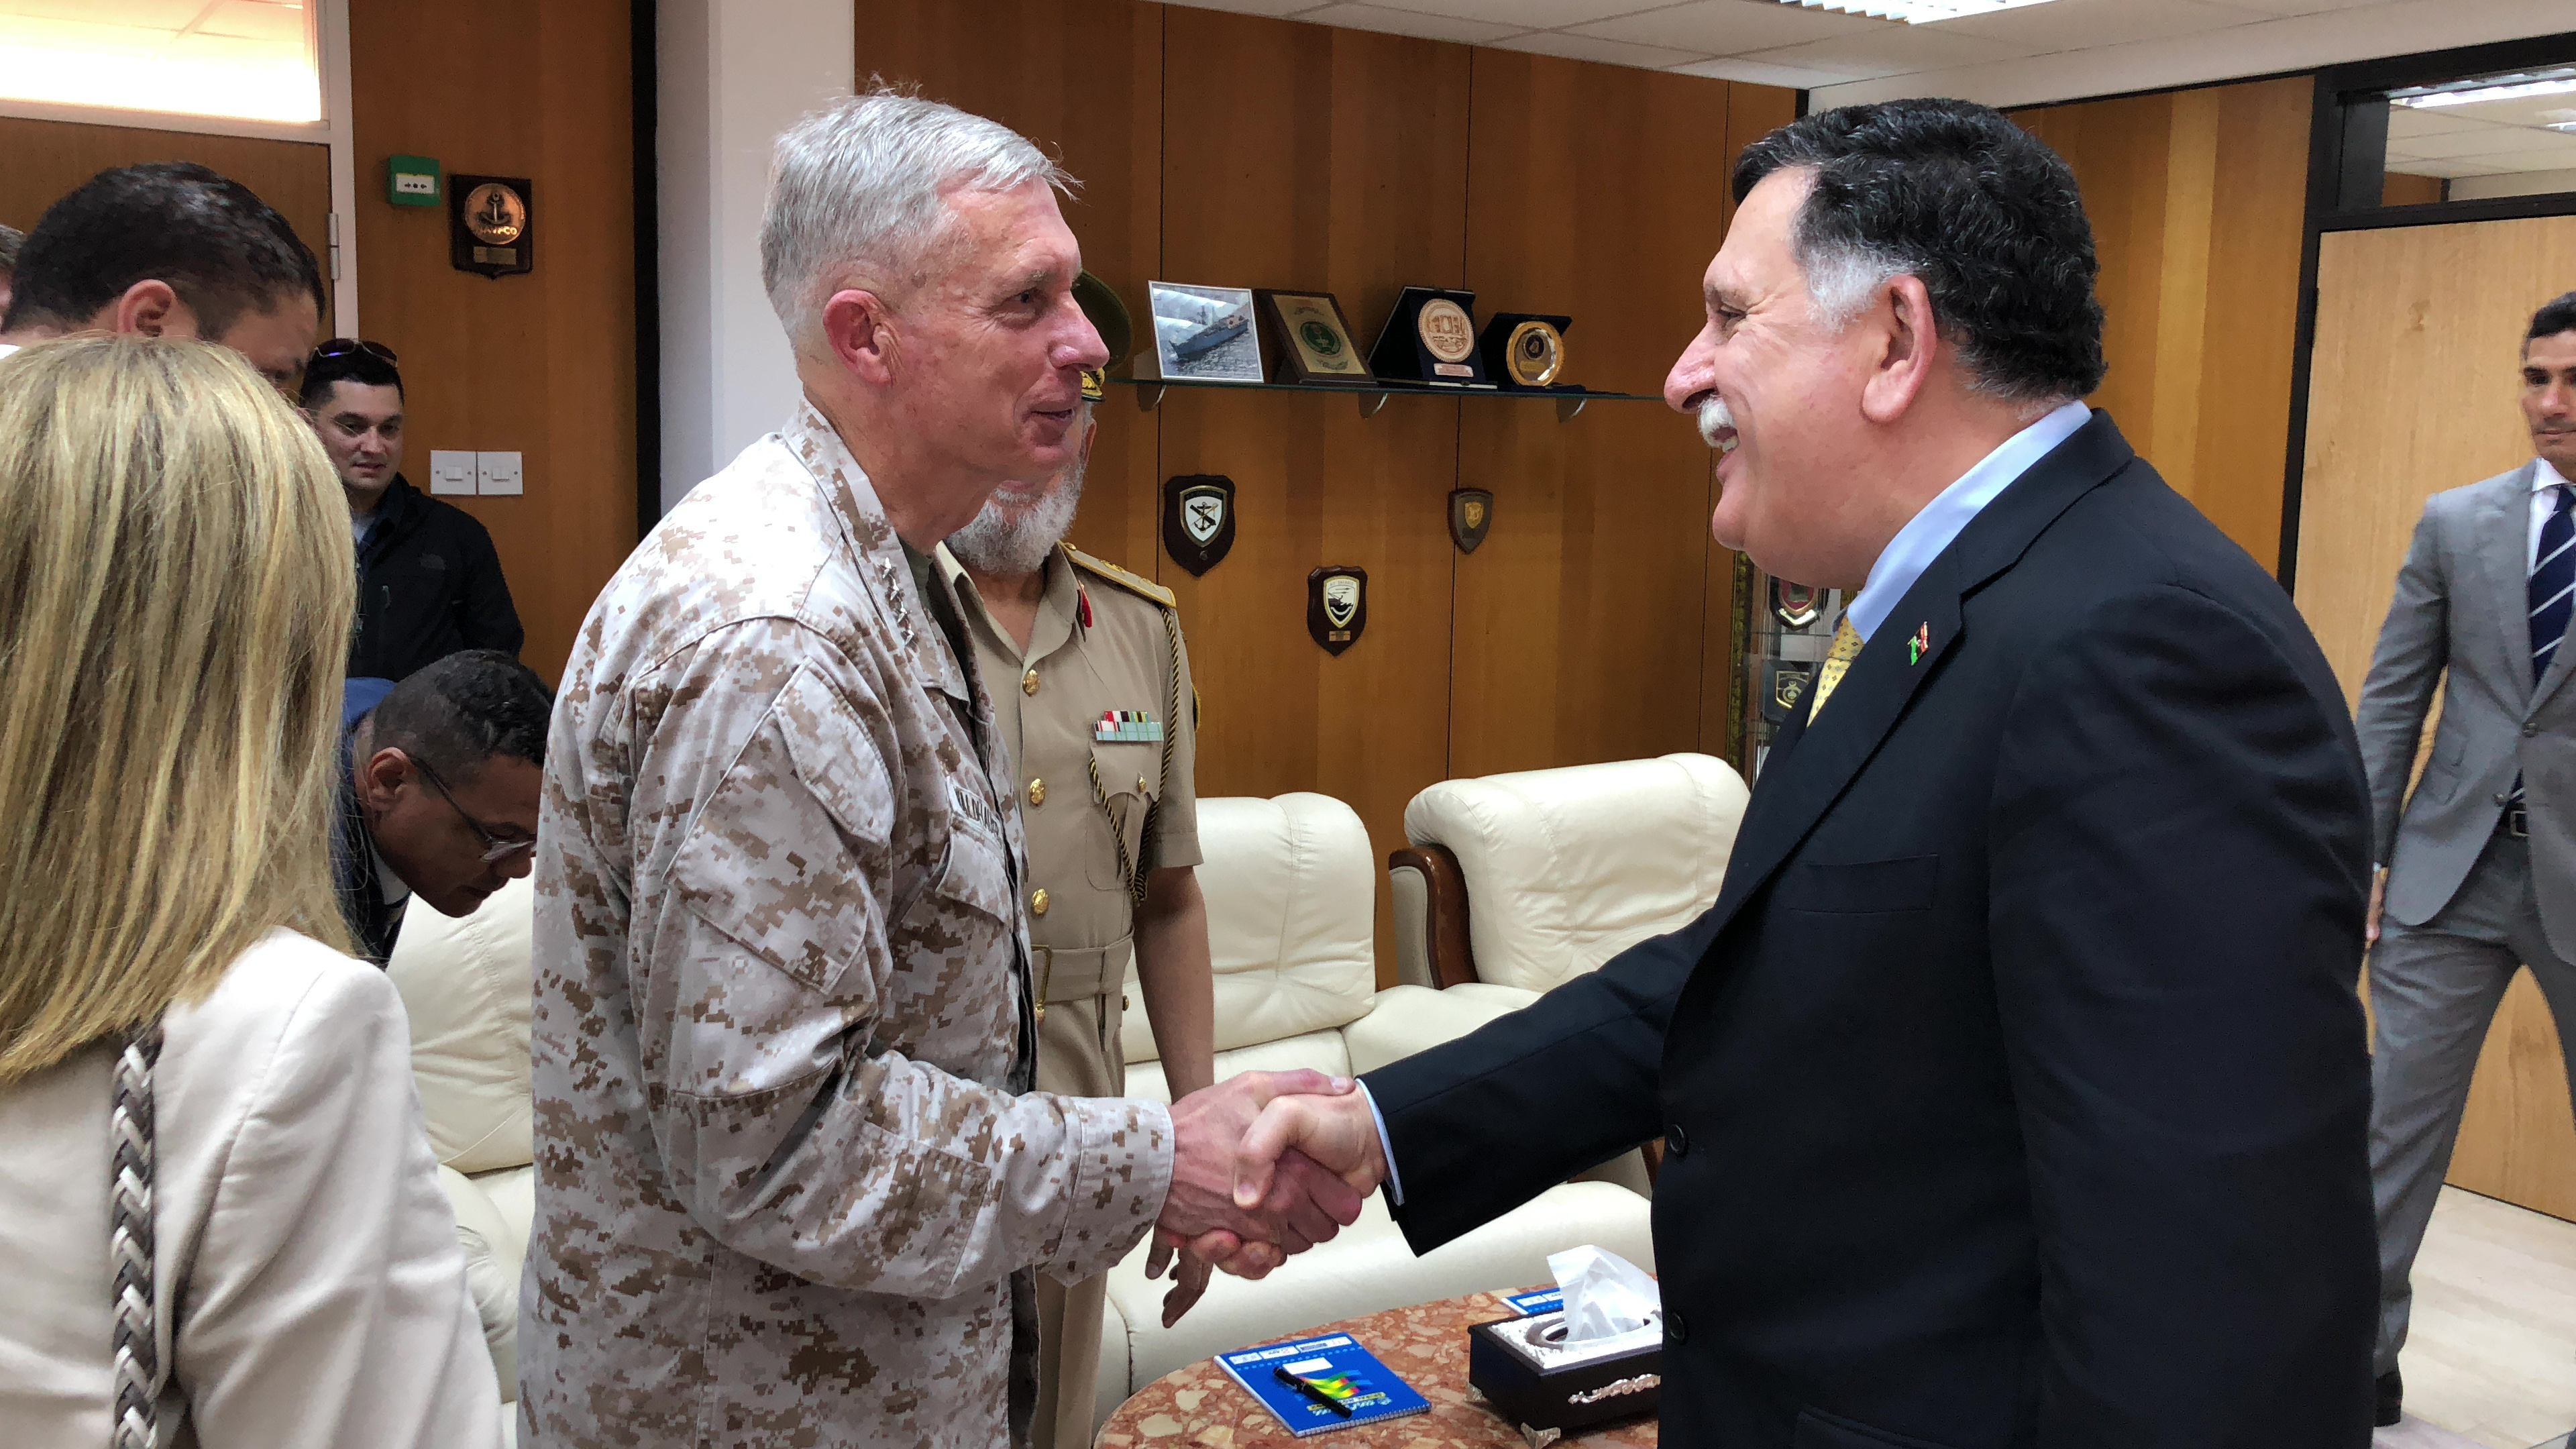 U.S. Marine Corps Gen. Thomas Waldhauser, Commander, U.S. Africa Command, meets with Libya's Government of National Accord Prime Minister Fayez al-Sarraj in Tripoli May 31, 2018.